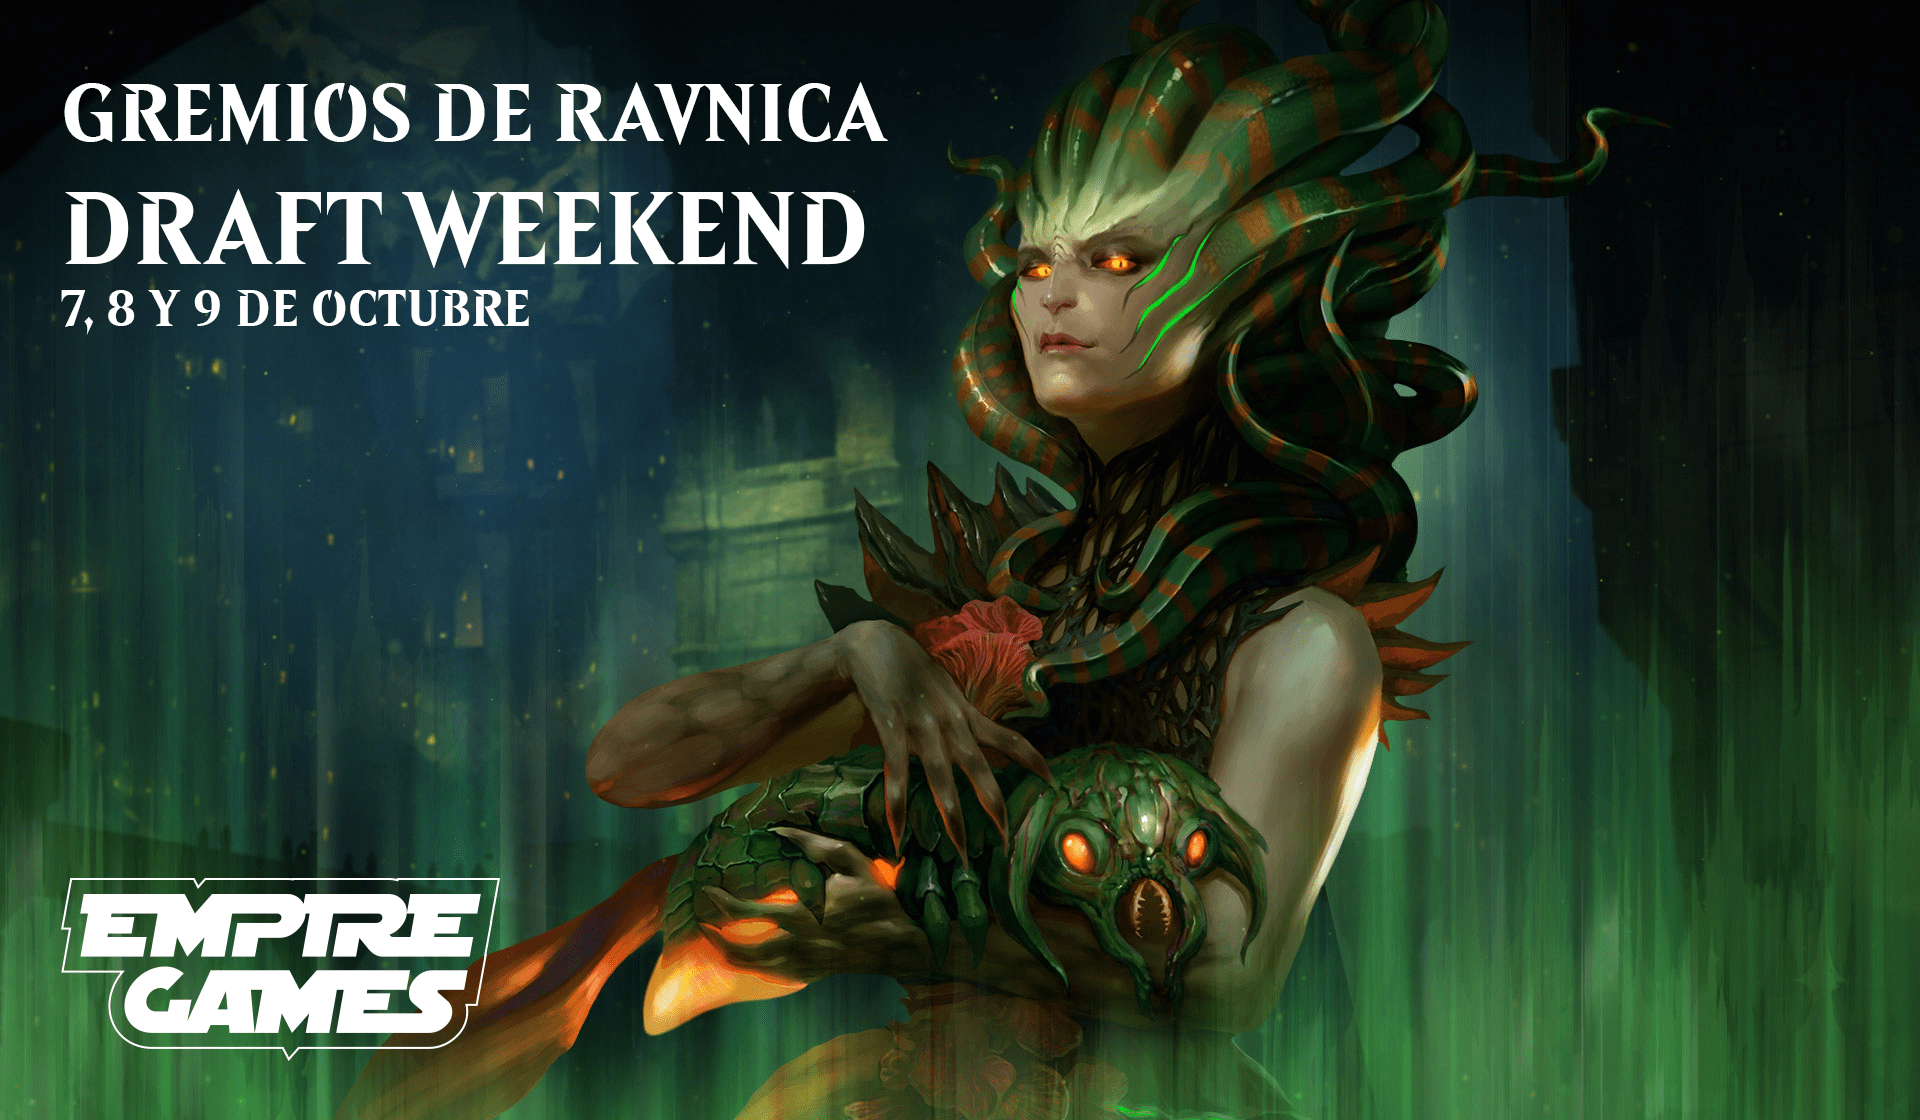 MTG – Draft Weekend Gremios De Ravnica